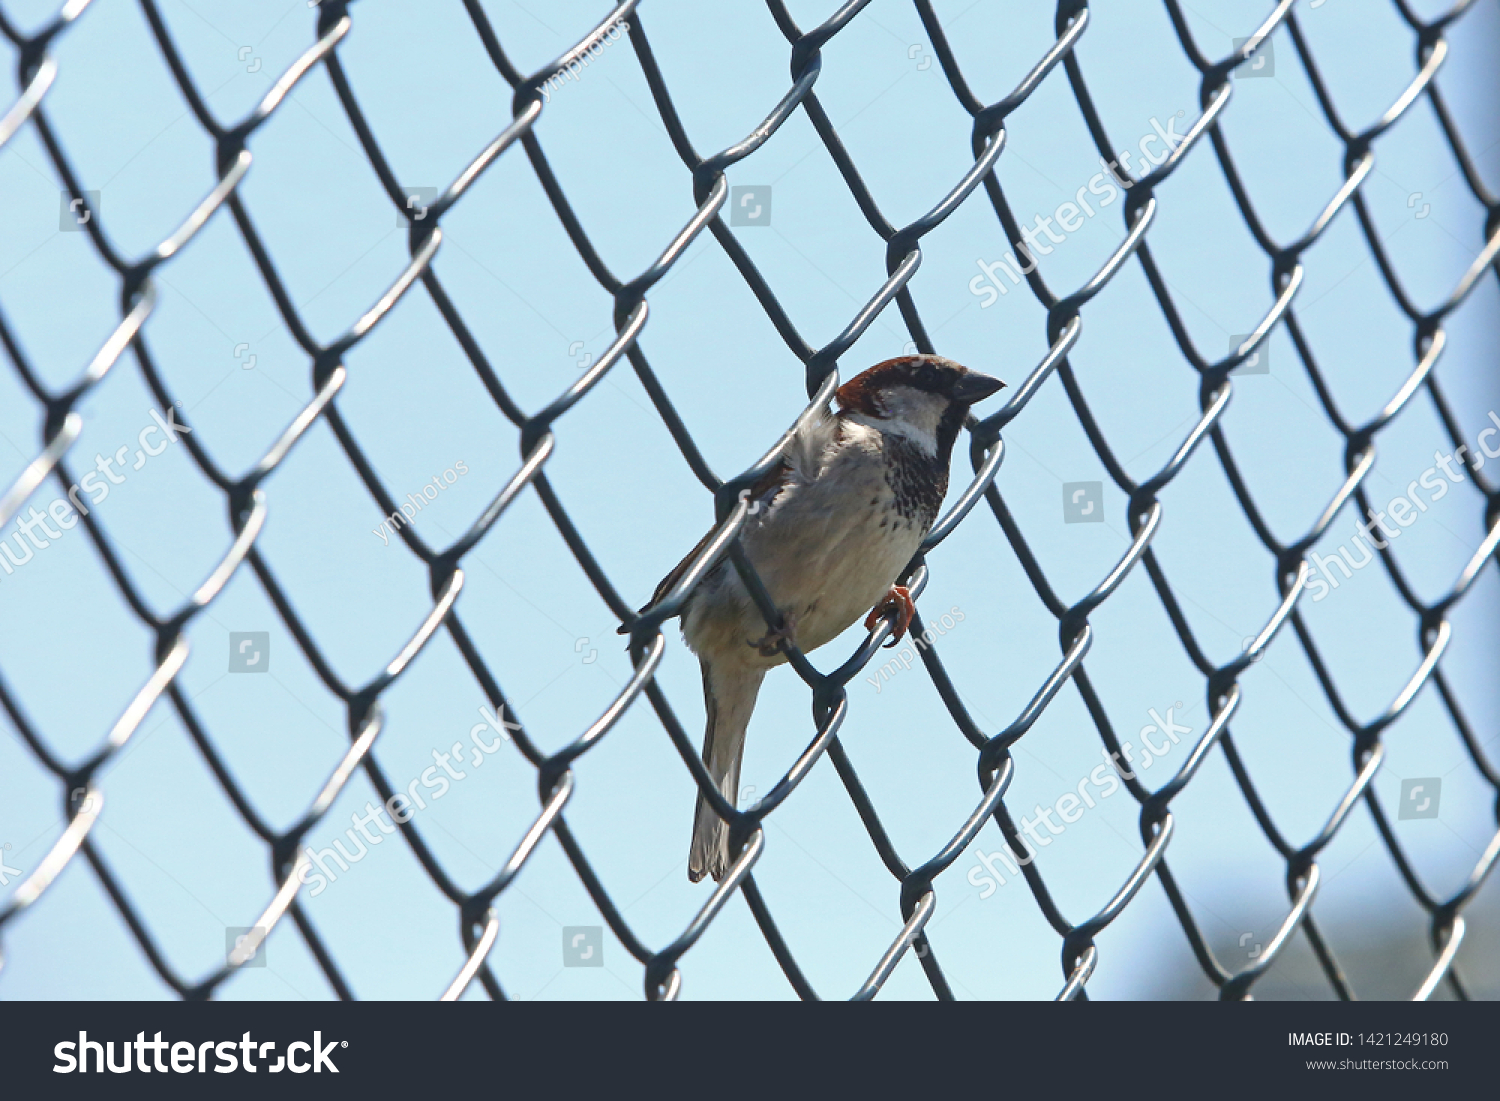 Sparrow is the name given to non-migratory, conic-billed bird species that form the Passeridae family, living in close proximity to humans. #1421249180